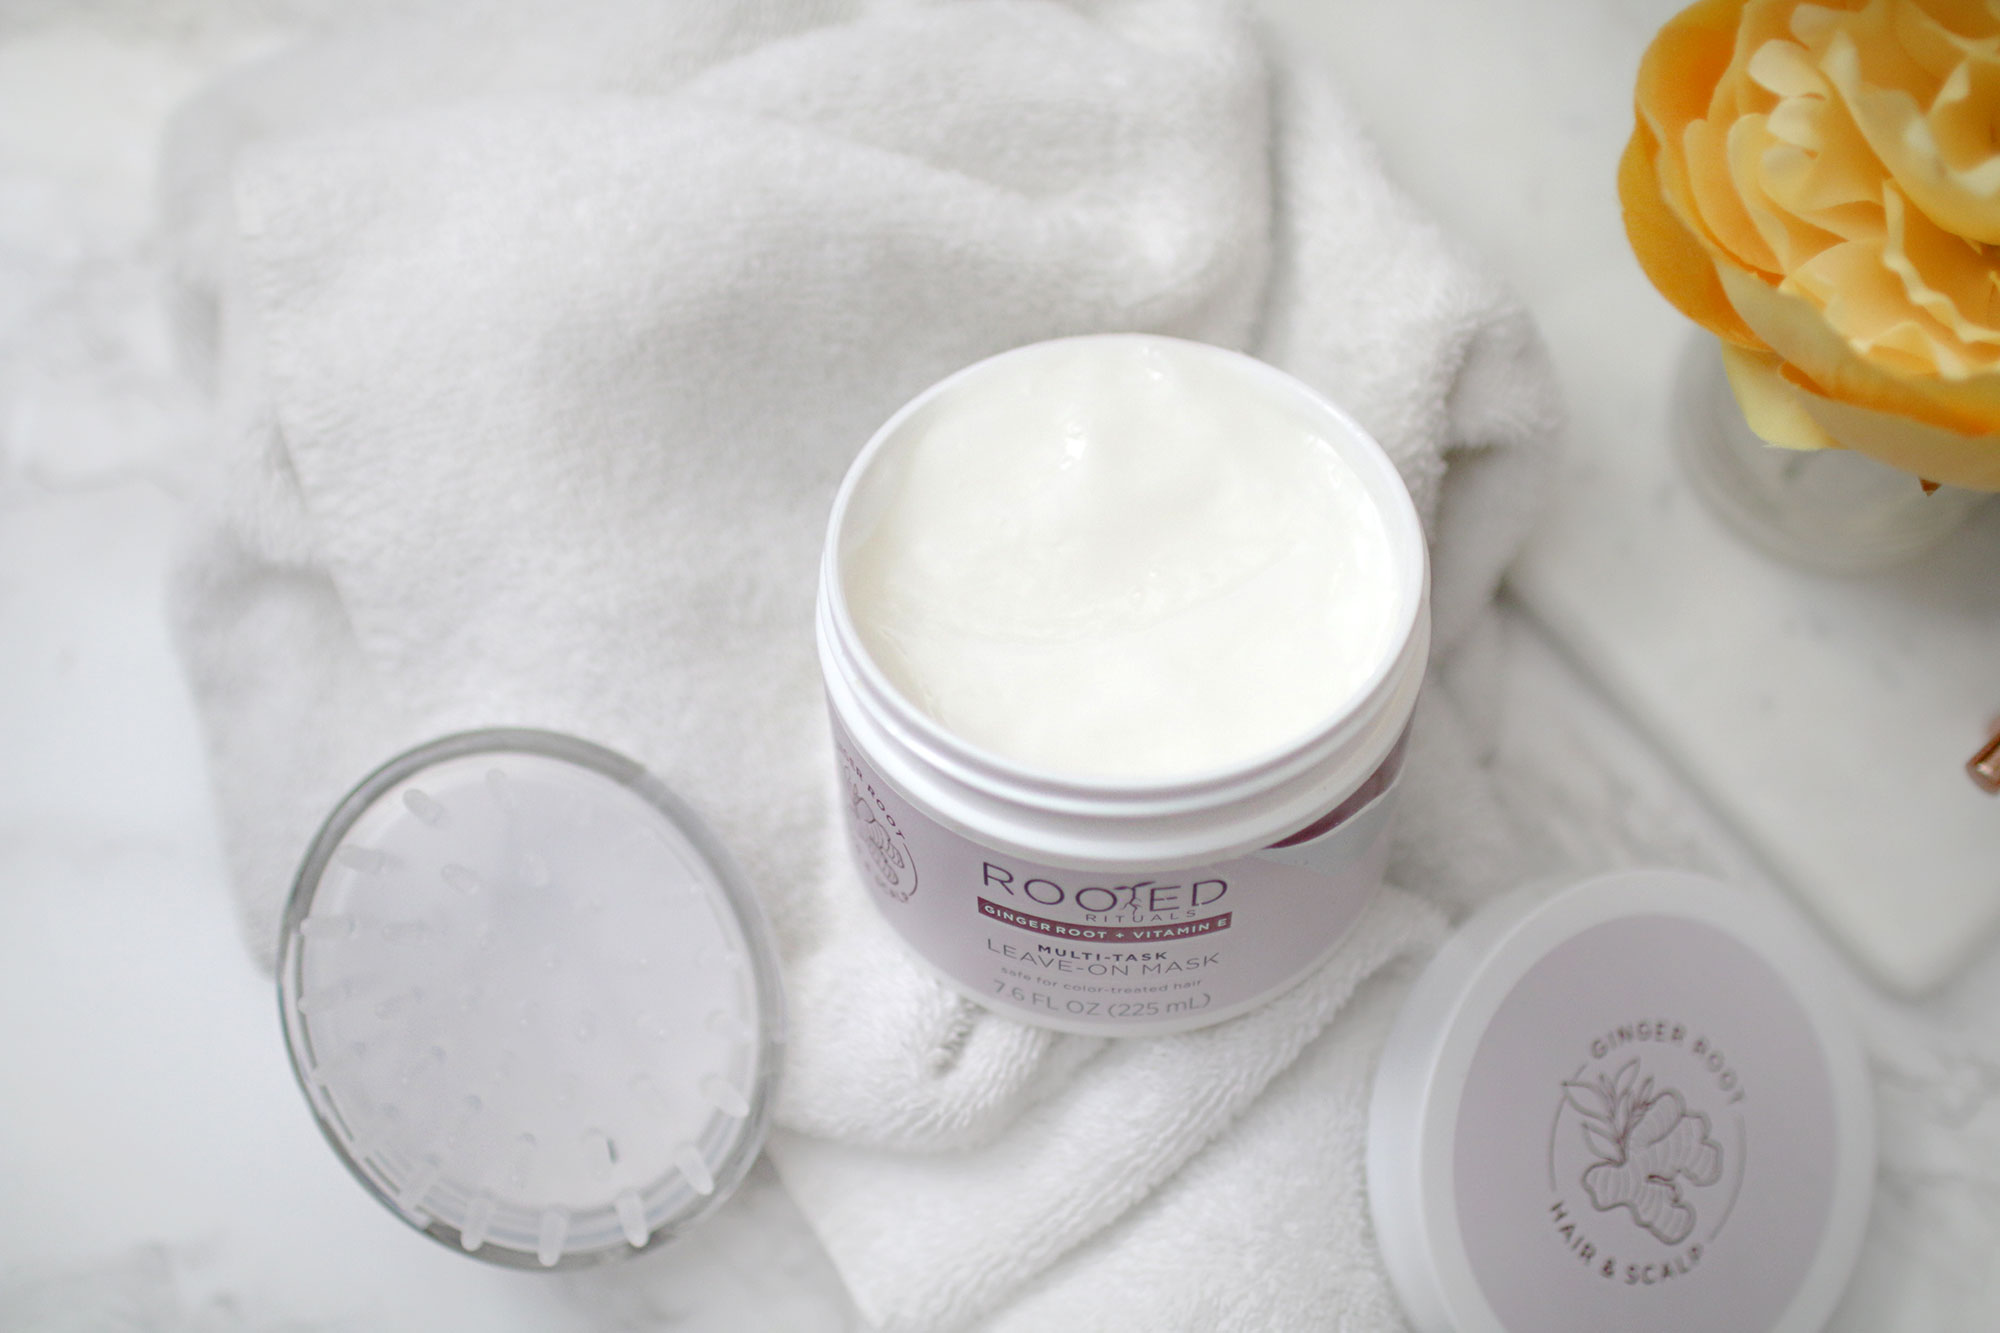 Rooted Rituals Vitamin E Multi-Task Leave-On Mask